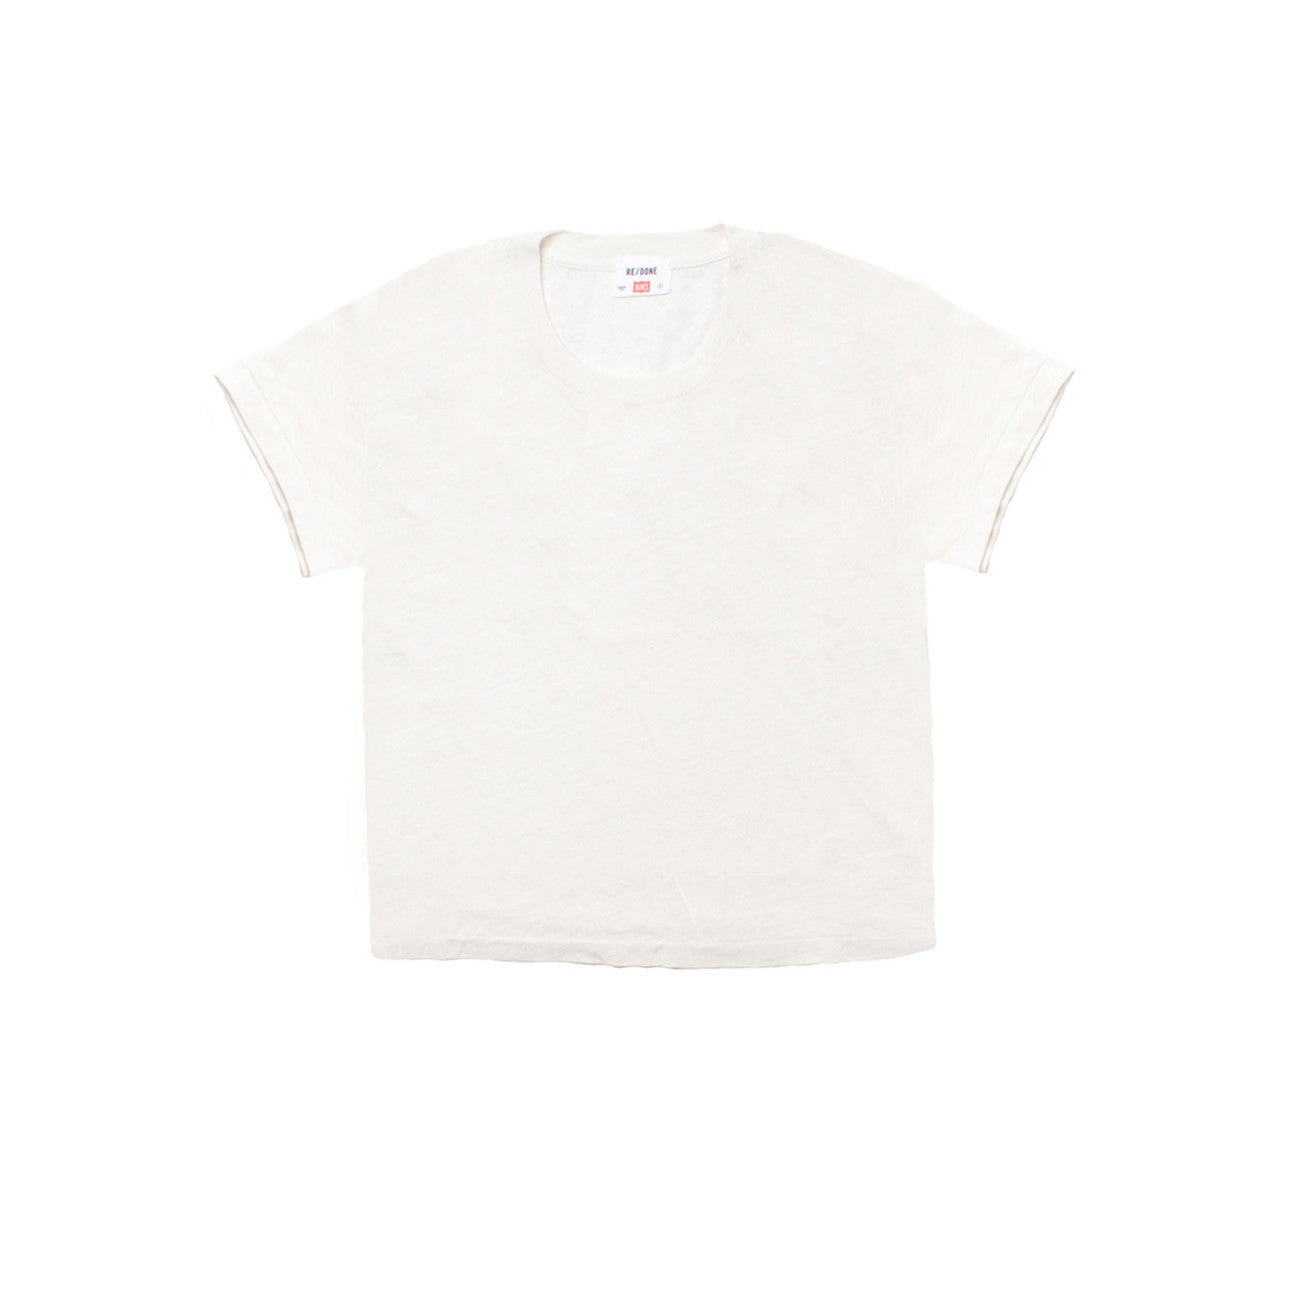 Re/Done Hanes The 1950s Boxy Tee in White